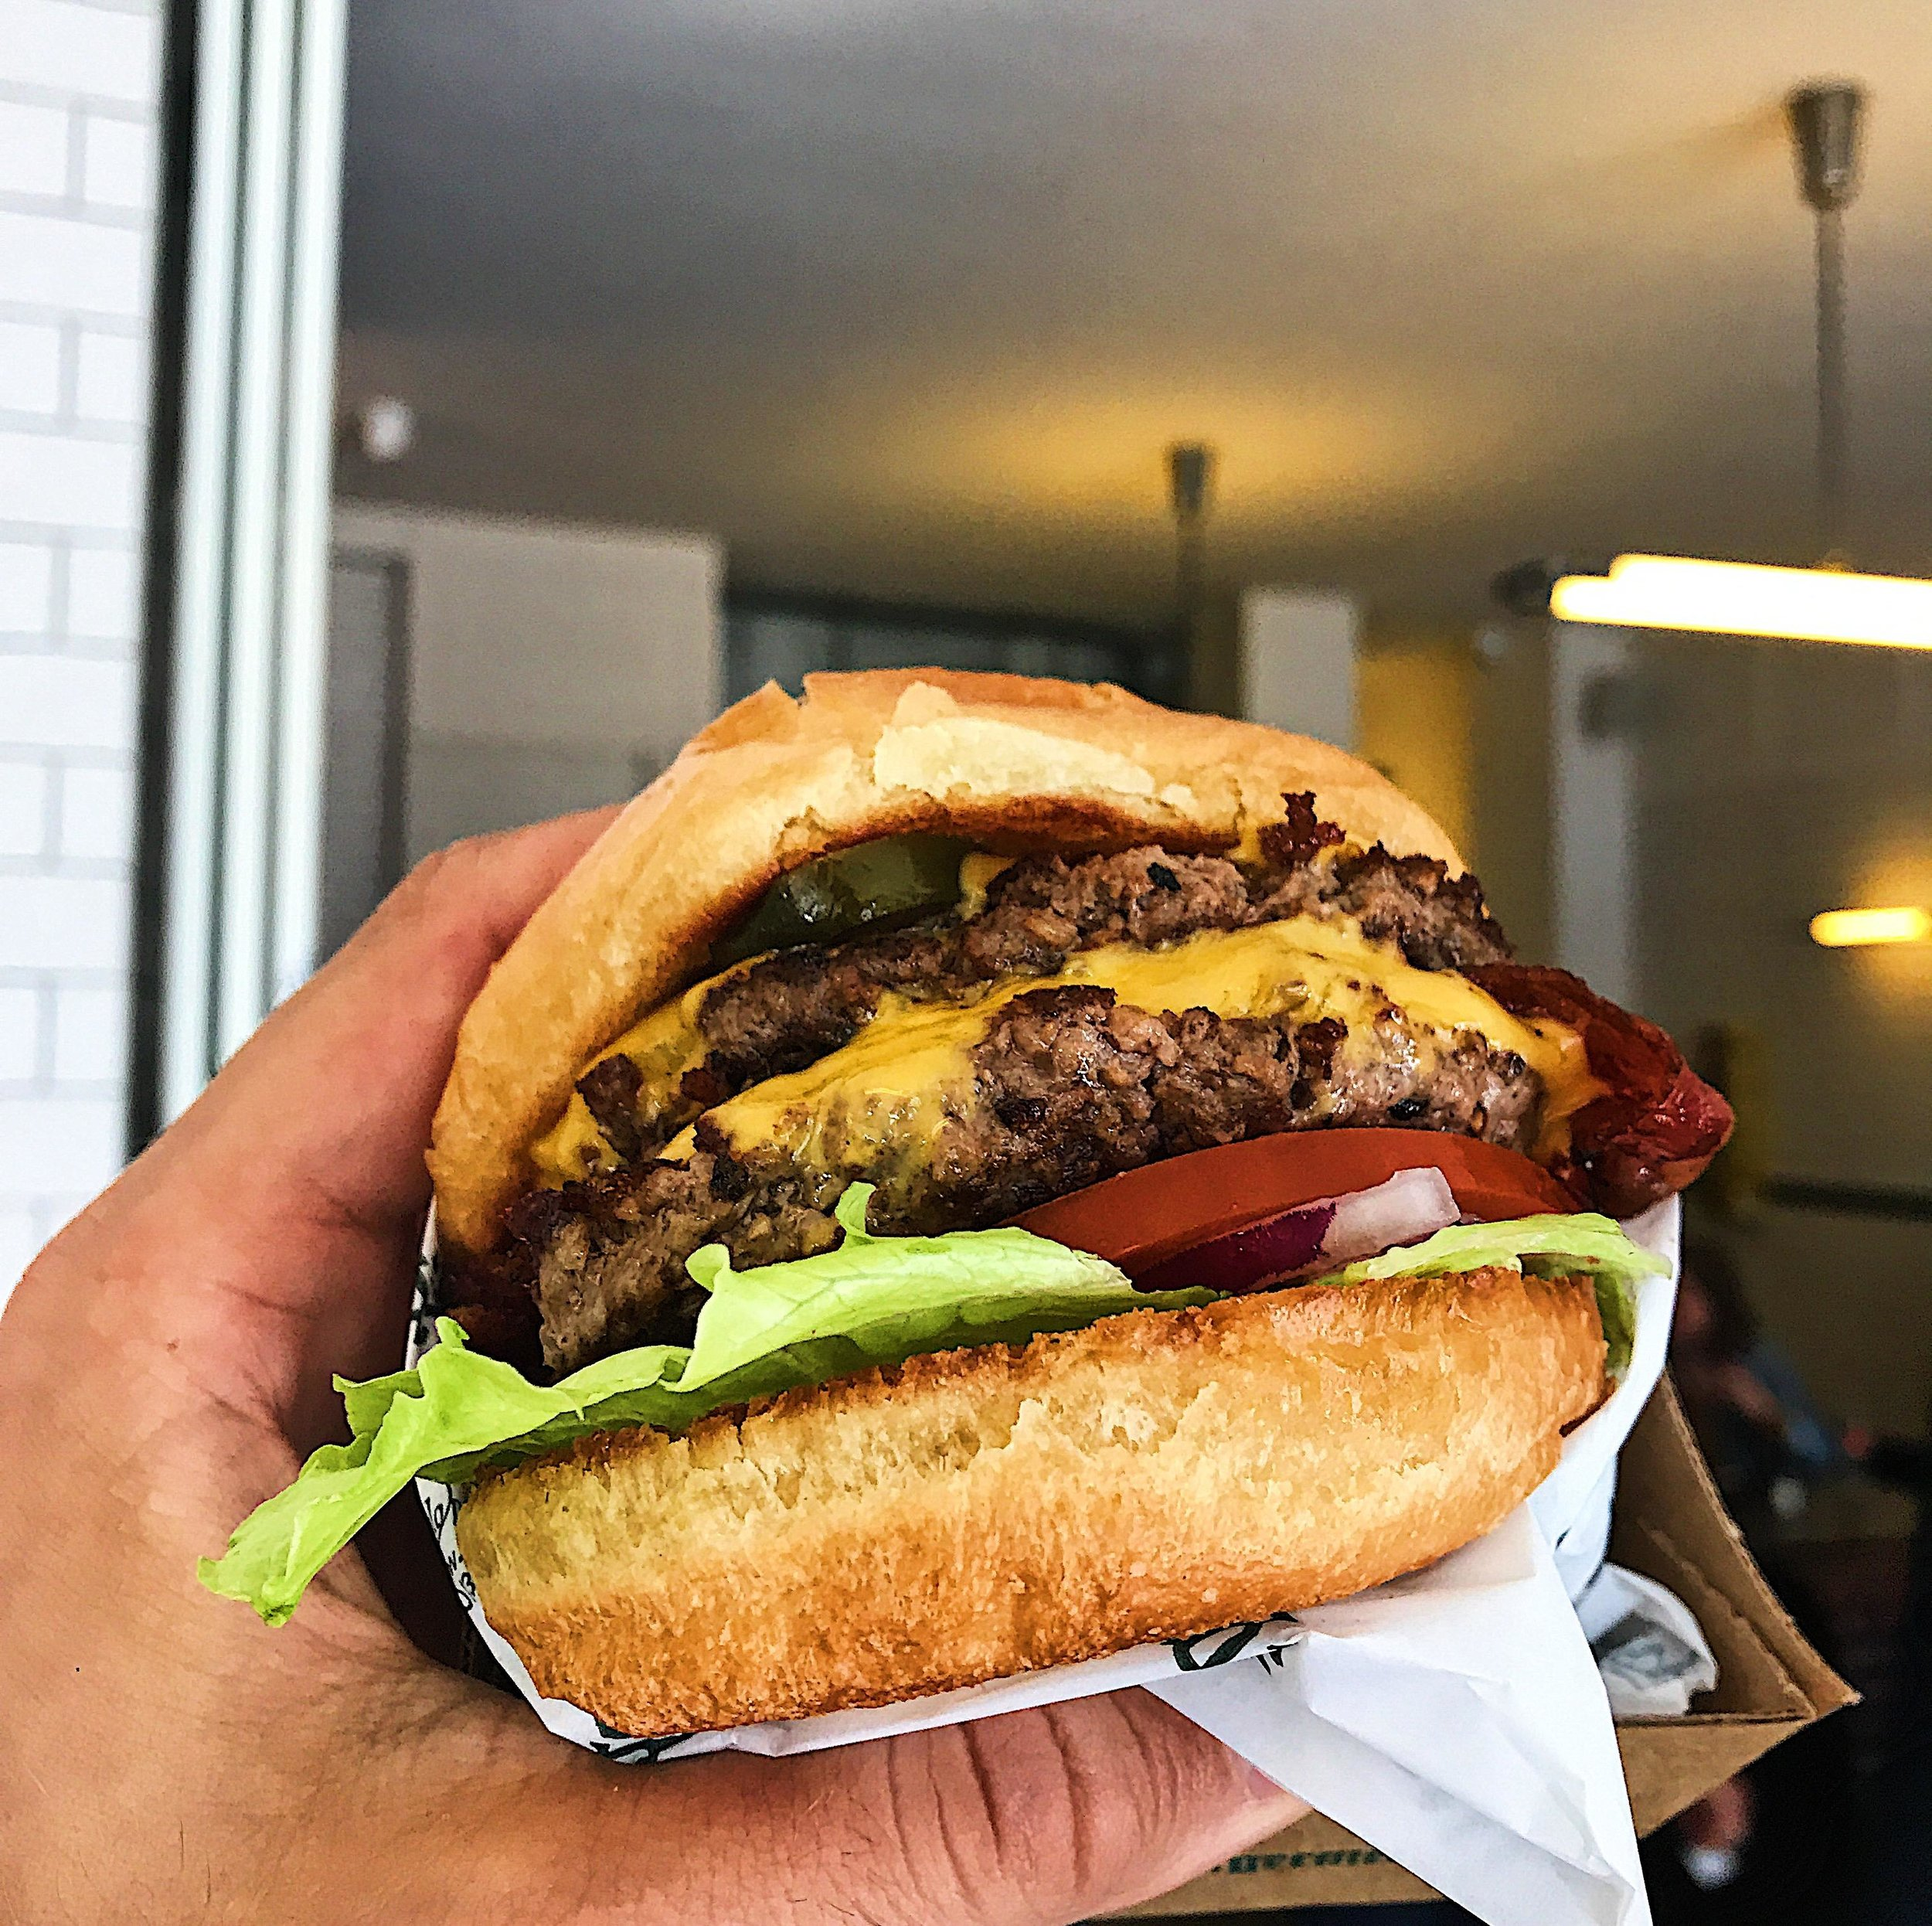 One burger to rule them all. Find out this No. 1 burger winner location (for now) below...